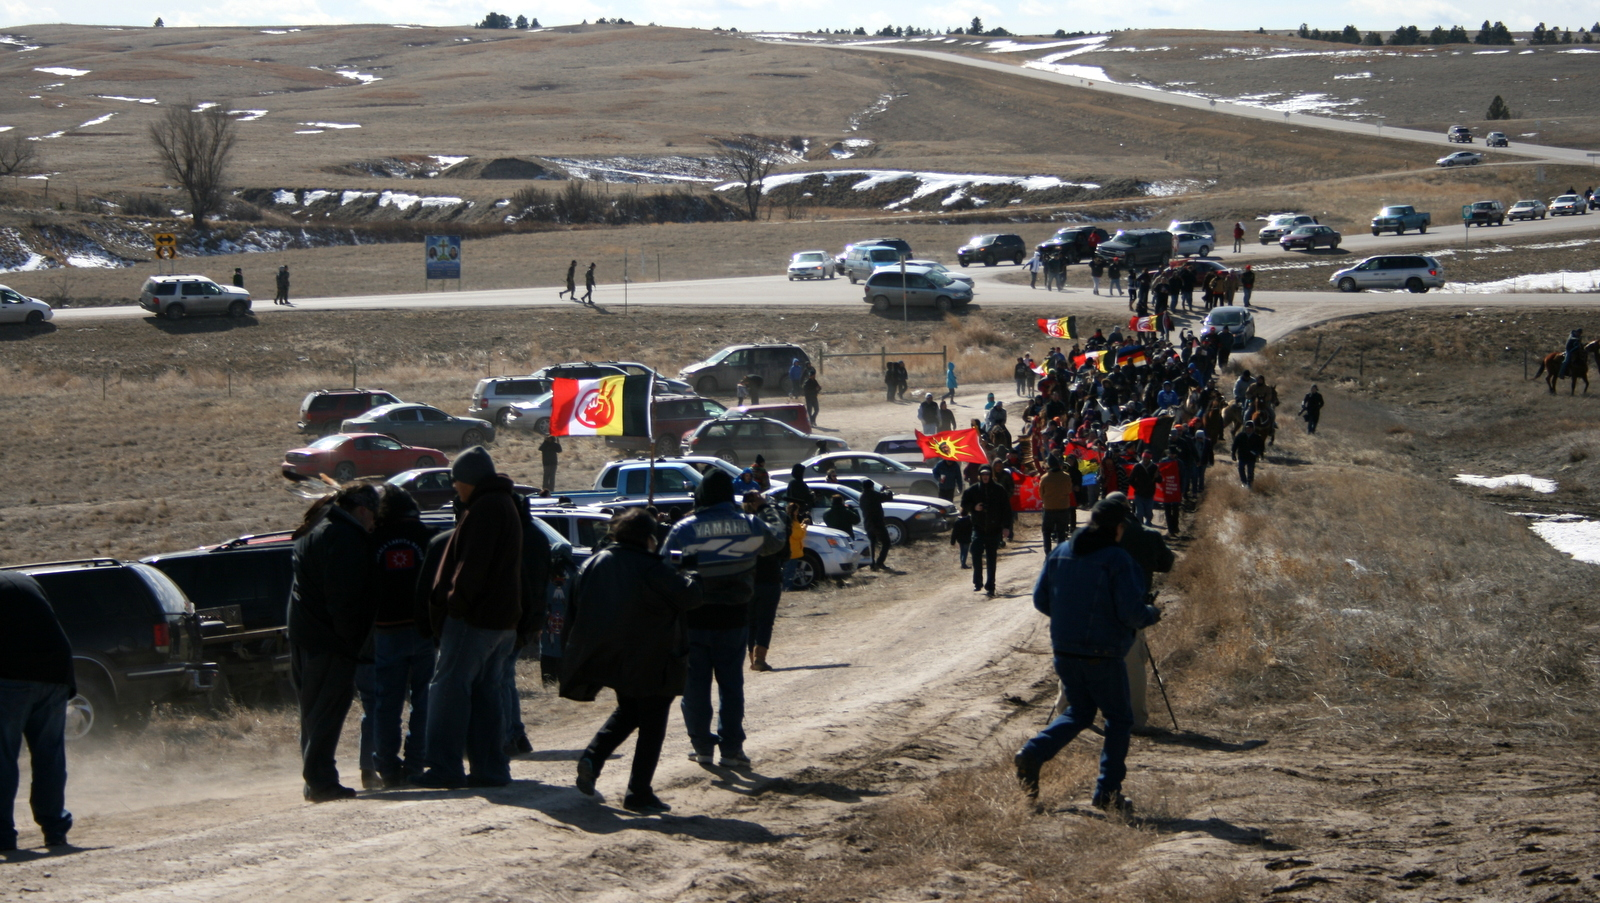 Members of the American Indian Movement walk to the Wounded Knee Massacre Monument Wednesday, Feb. 27, 2013 in Wounded Knee, S.D. (AP Photo/Kristi Eaton)